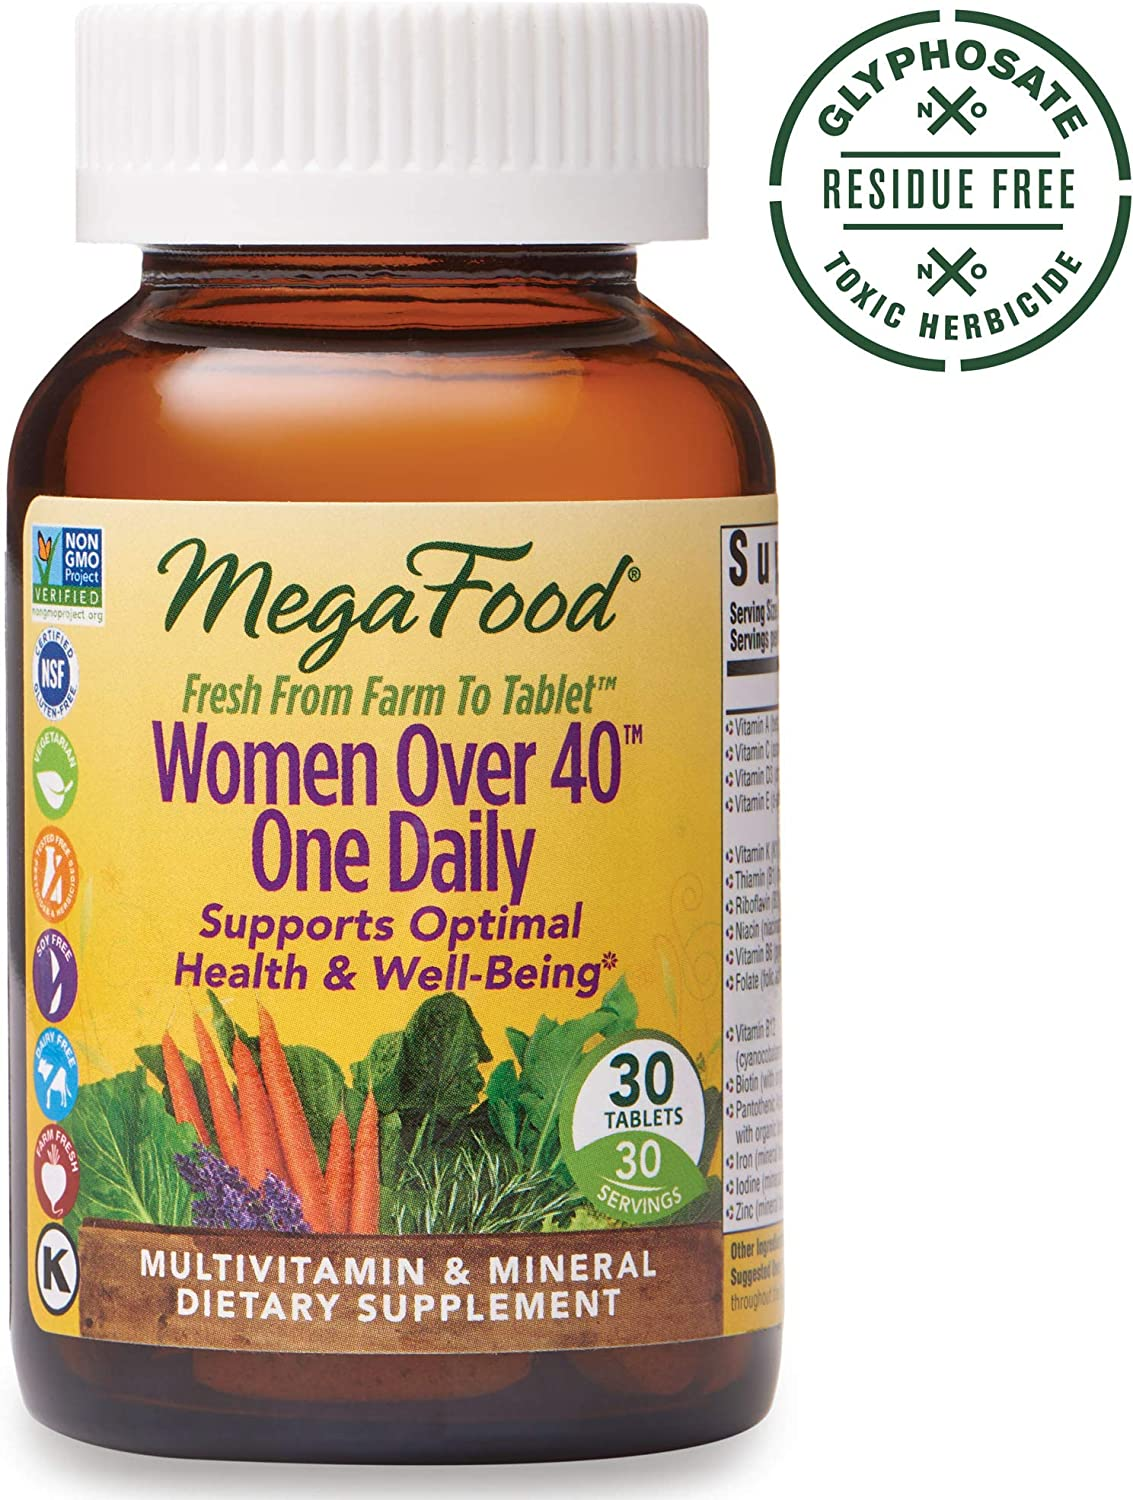 MegaFood, Women Over 40 One Daily, Daily Multivitamin and Mineral Dietary Supplement with Vitamins C, D, Folate, Biotin and Iron, Non-GMO, Vegetarian, 30 Tablets (30 Servings) (FFP)